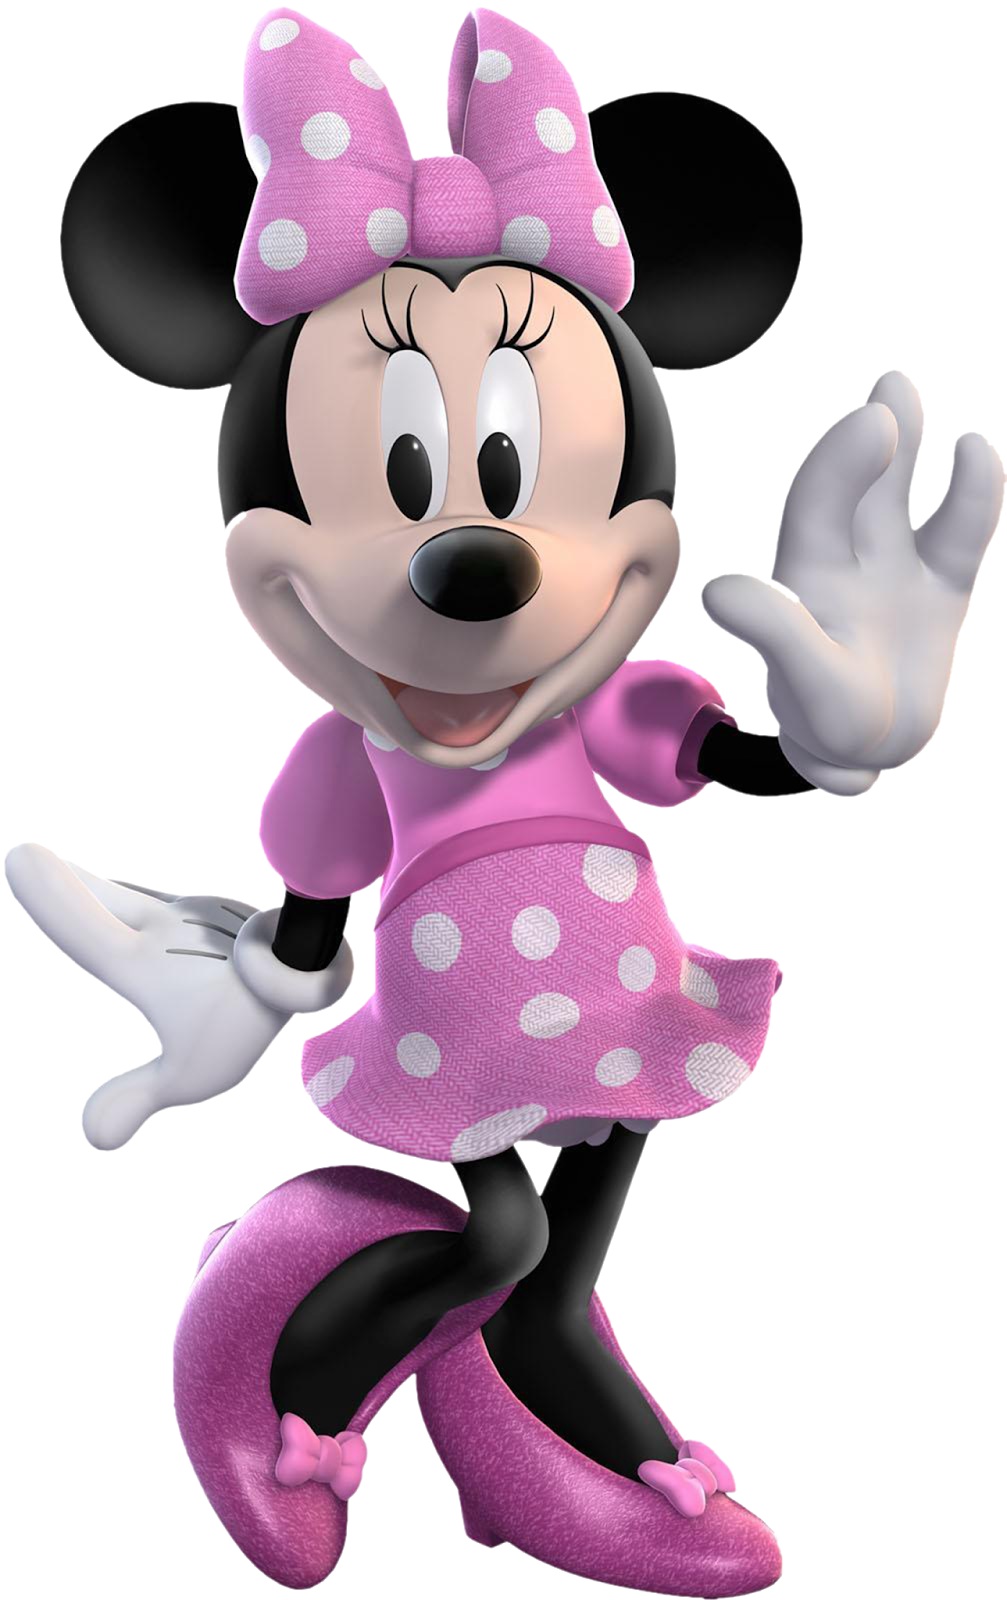 Download For Free Minnie Mouse Png In High Resolution image #34150